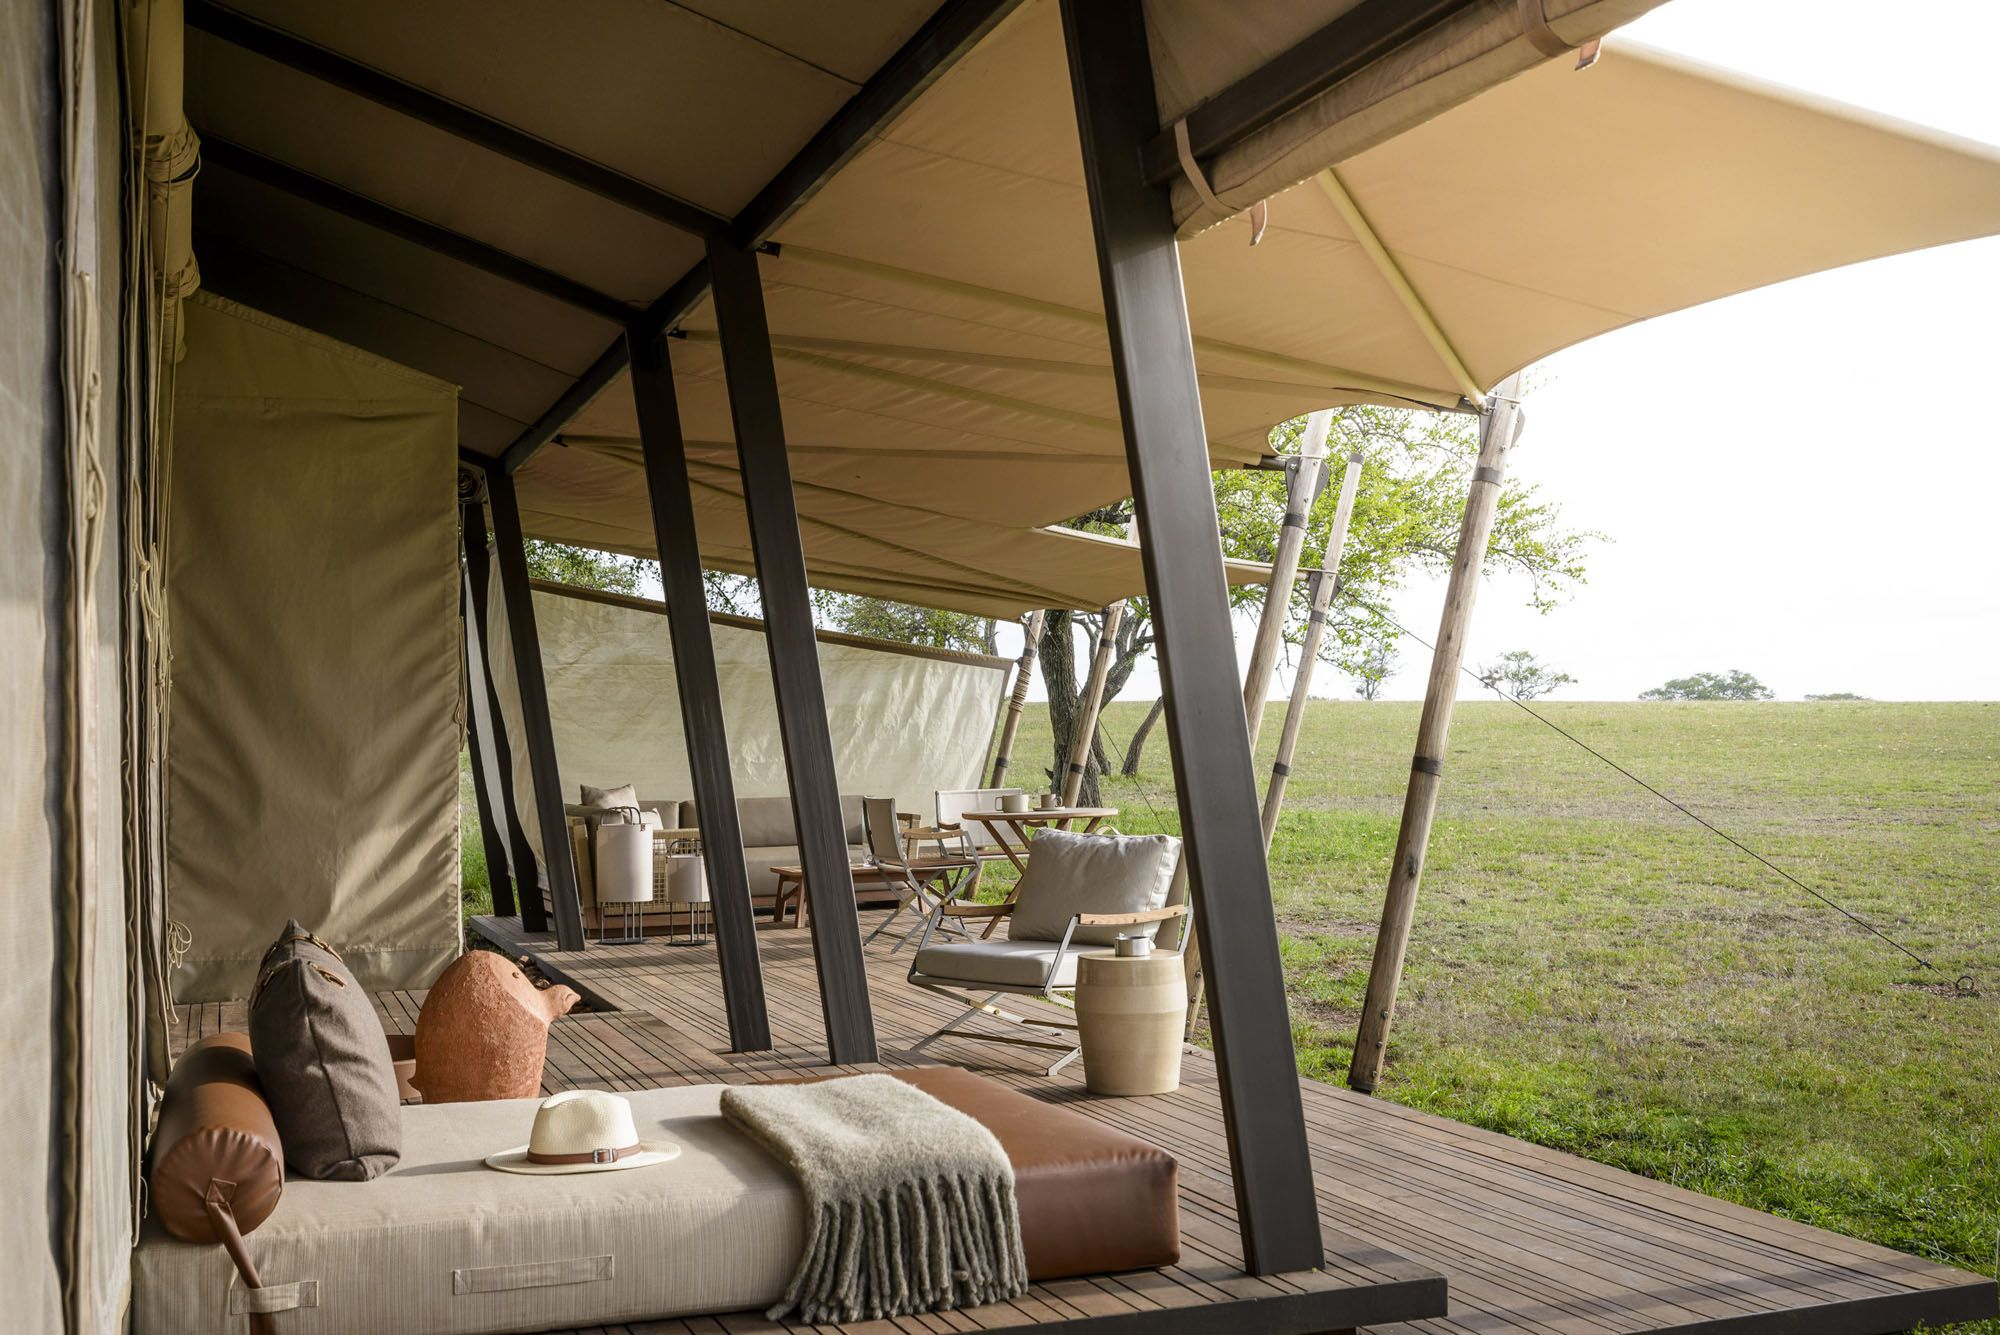 A First Look at the New Singita Sabora Tented Camp in Tanzania, Where a Sustainable Safari Trip Awaits